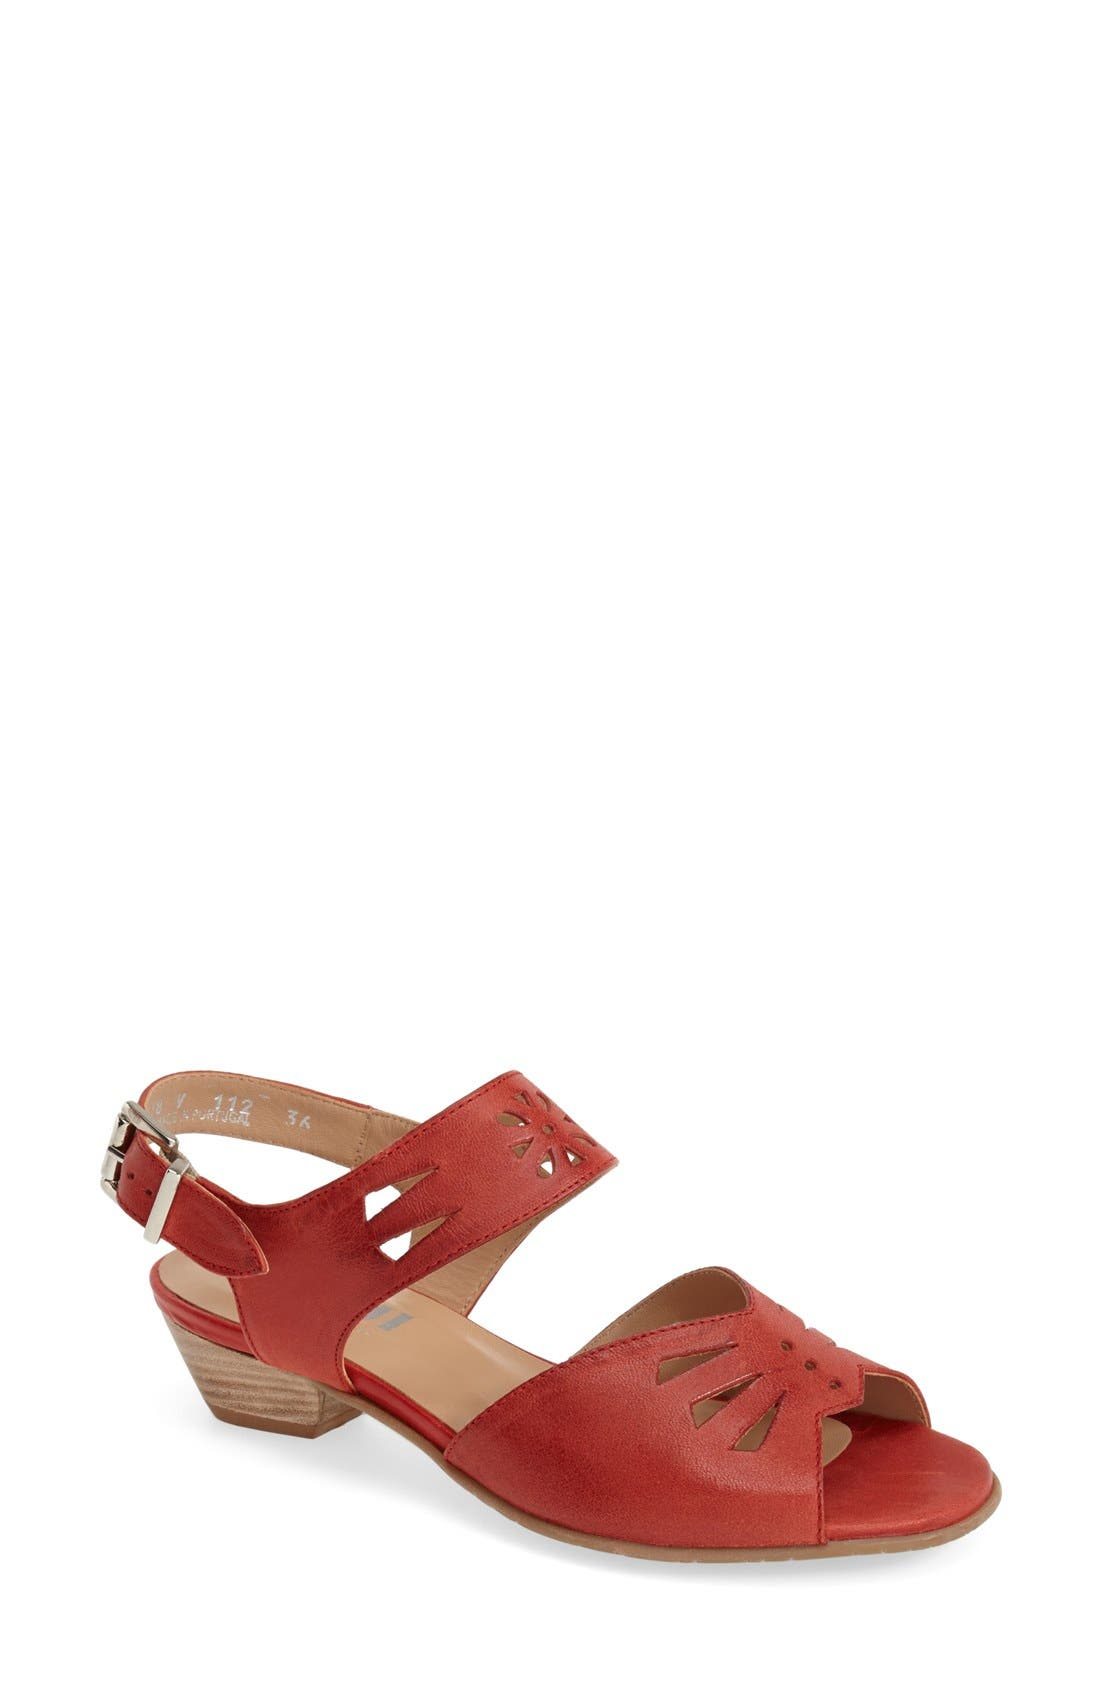 'V112' Perforated Leather Sandal,                             Main thumbnail 1, color,                             RED